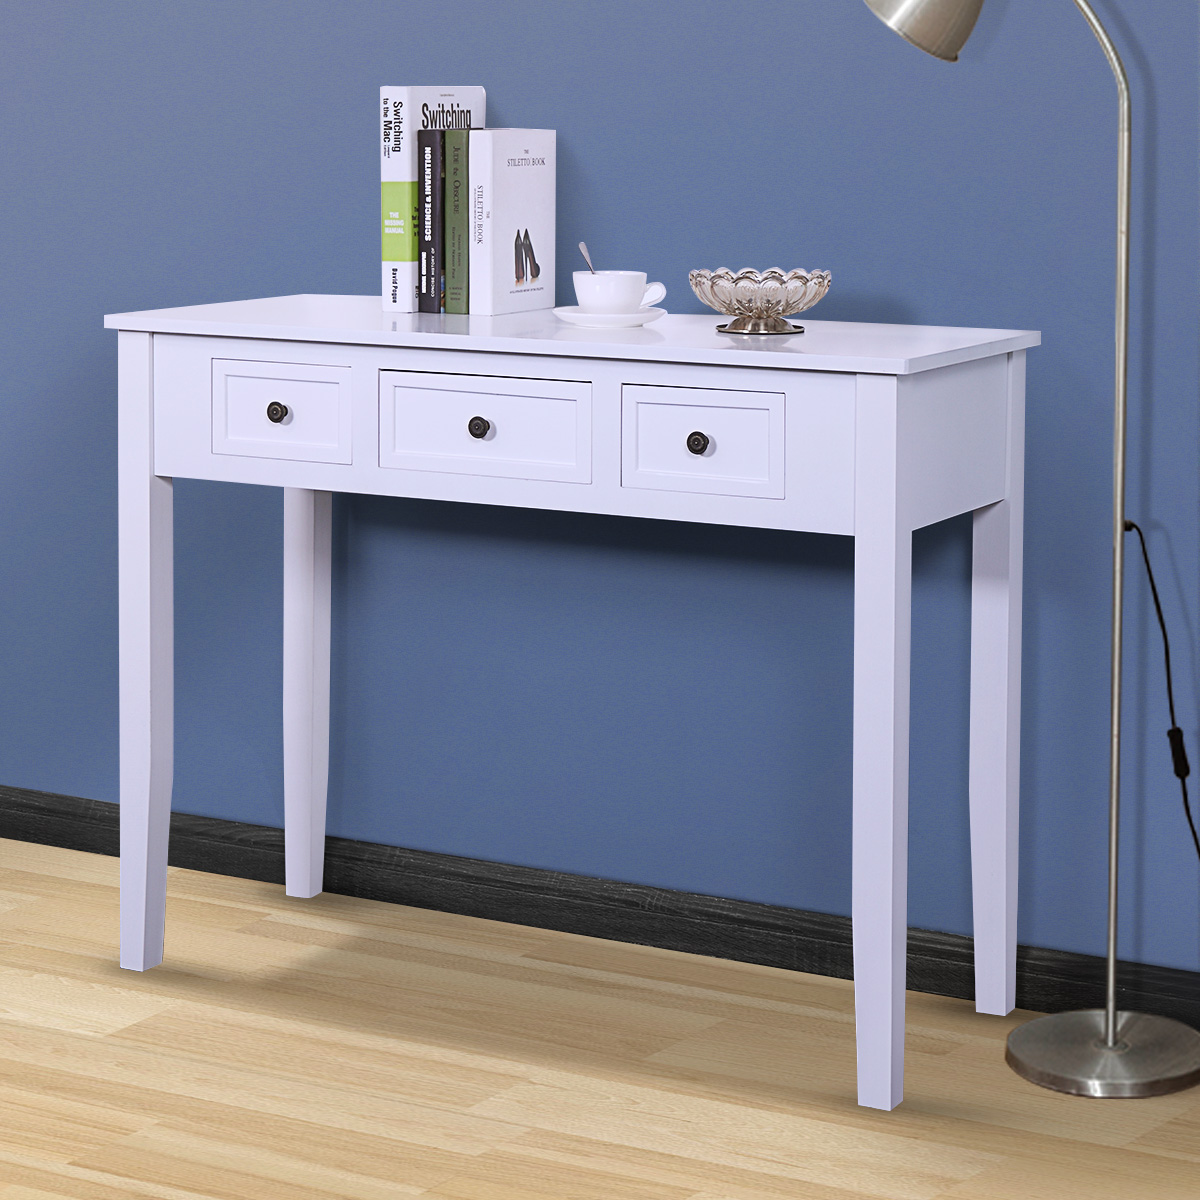 Jaxpety White Computer Writing Desk Table Modern Simple Design Wood Organizer Home Office Bedroom w/ 3 Drawers